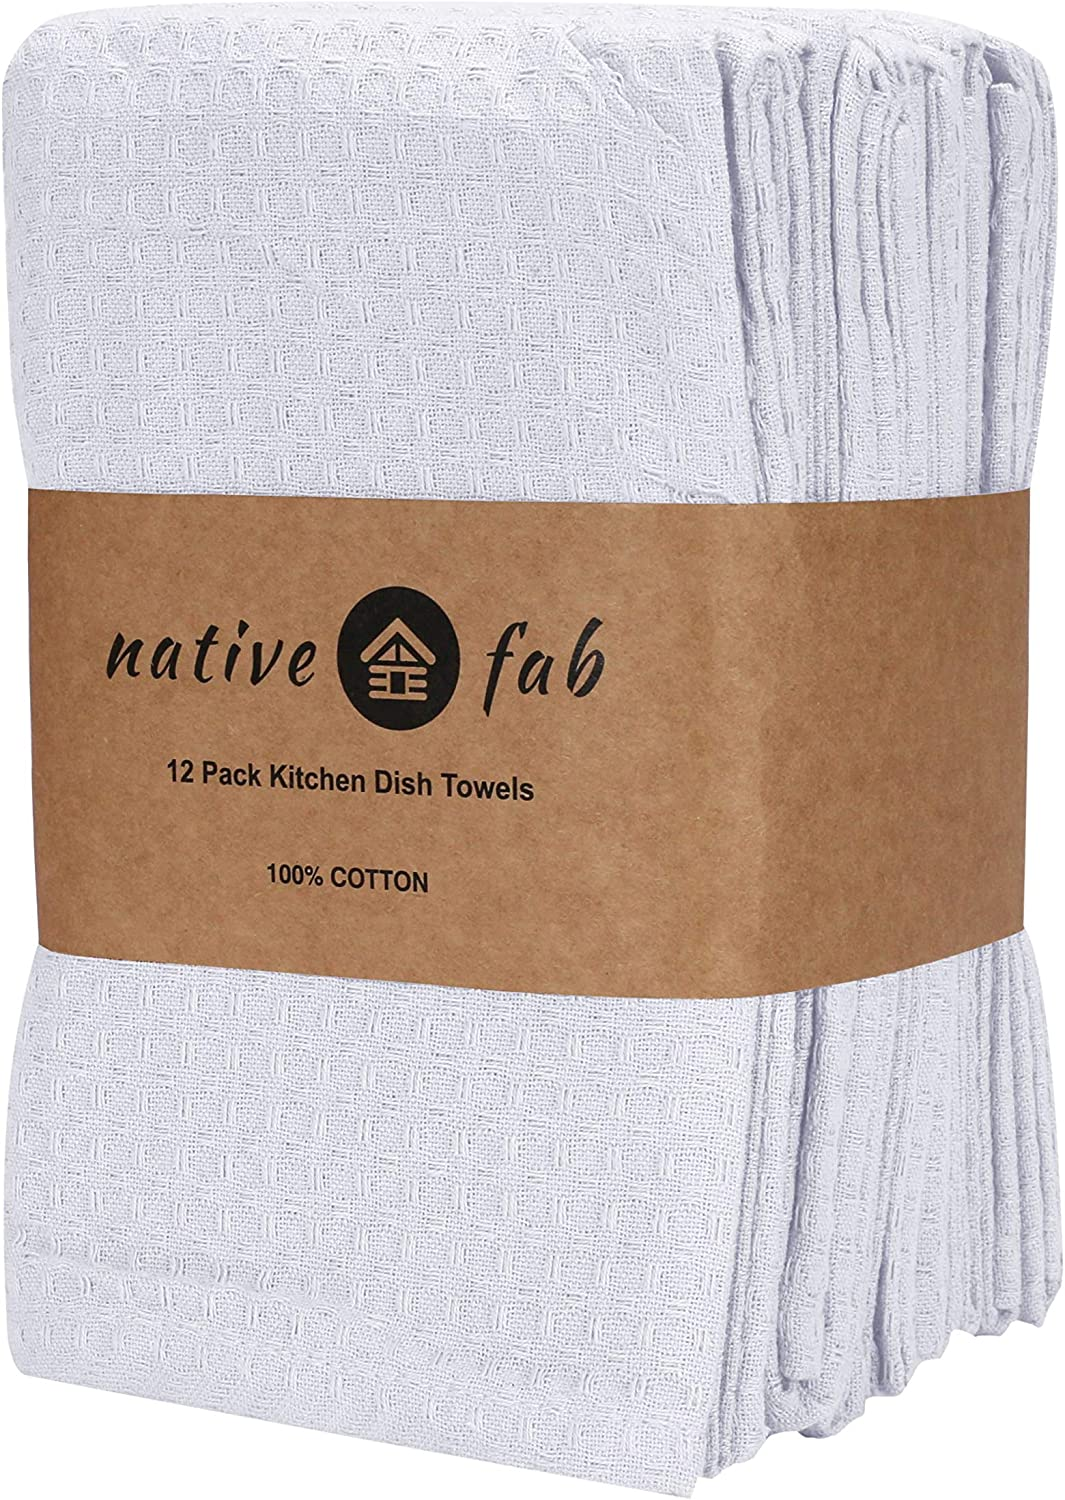 Soft Absorbent Durable Washable White Native Fab Tea Towels Set of 12 Dish Towels with Hanging Loop 100/% Cotton Kitchen Towels 40 x 66 cm